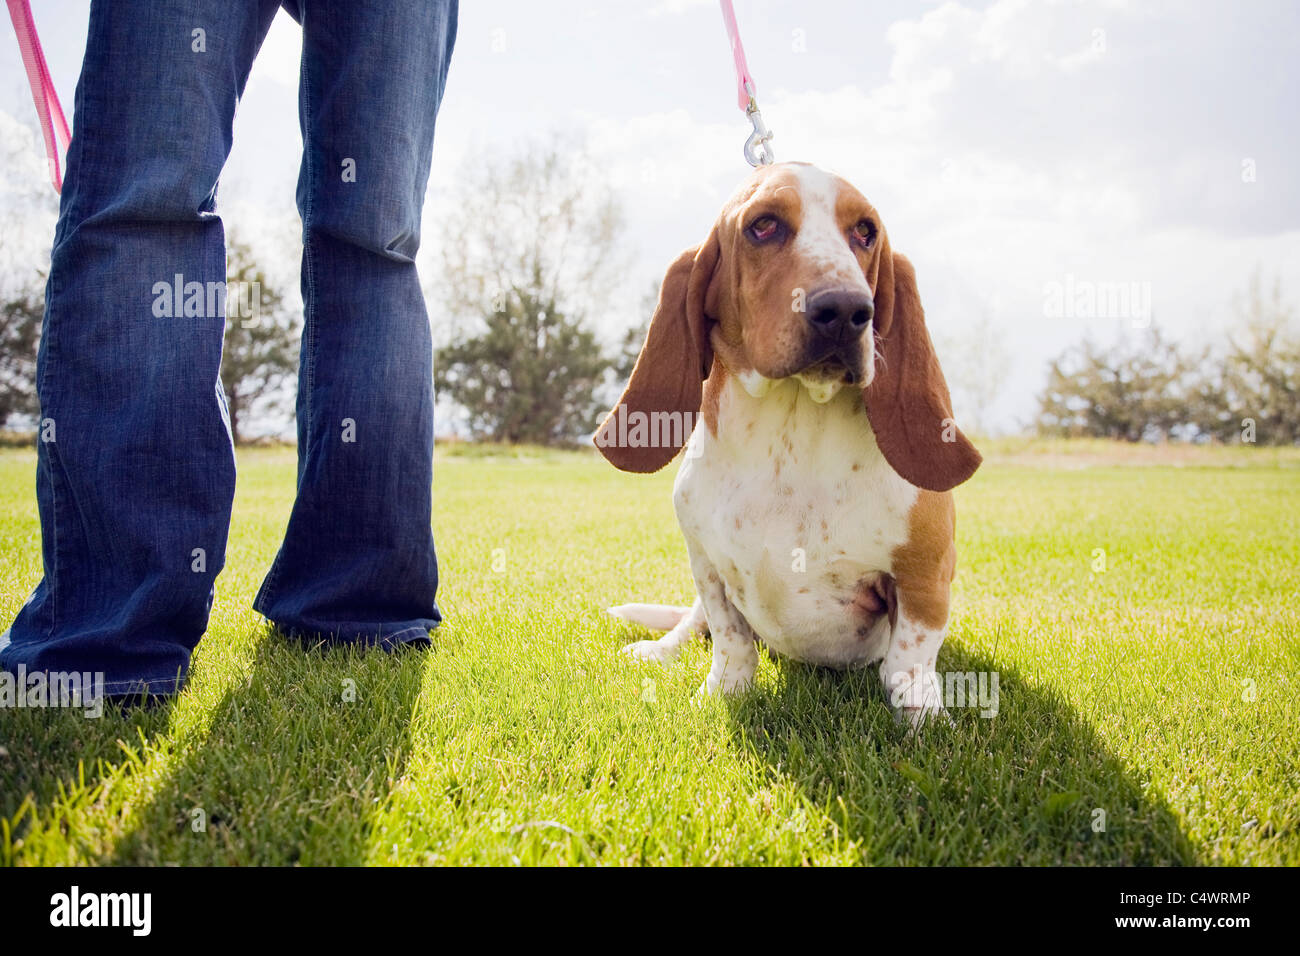 USA, Colorado, woman with dog on lawn - Stock Image